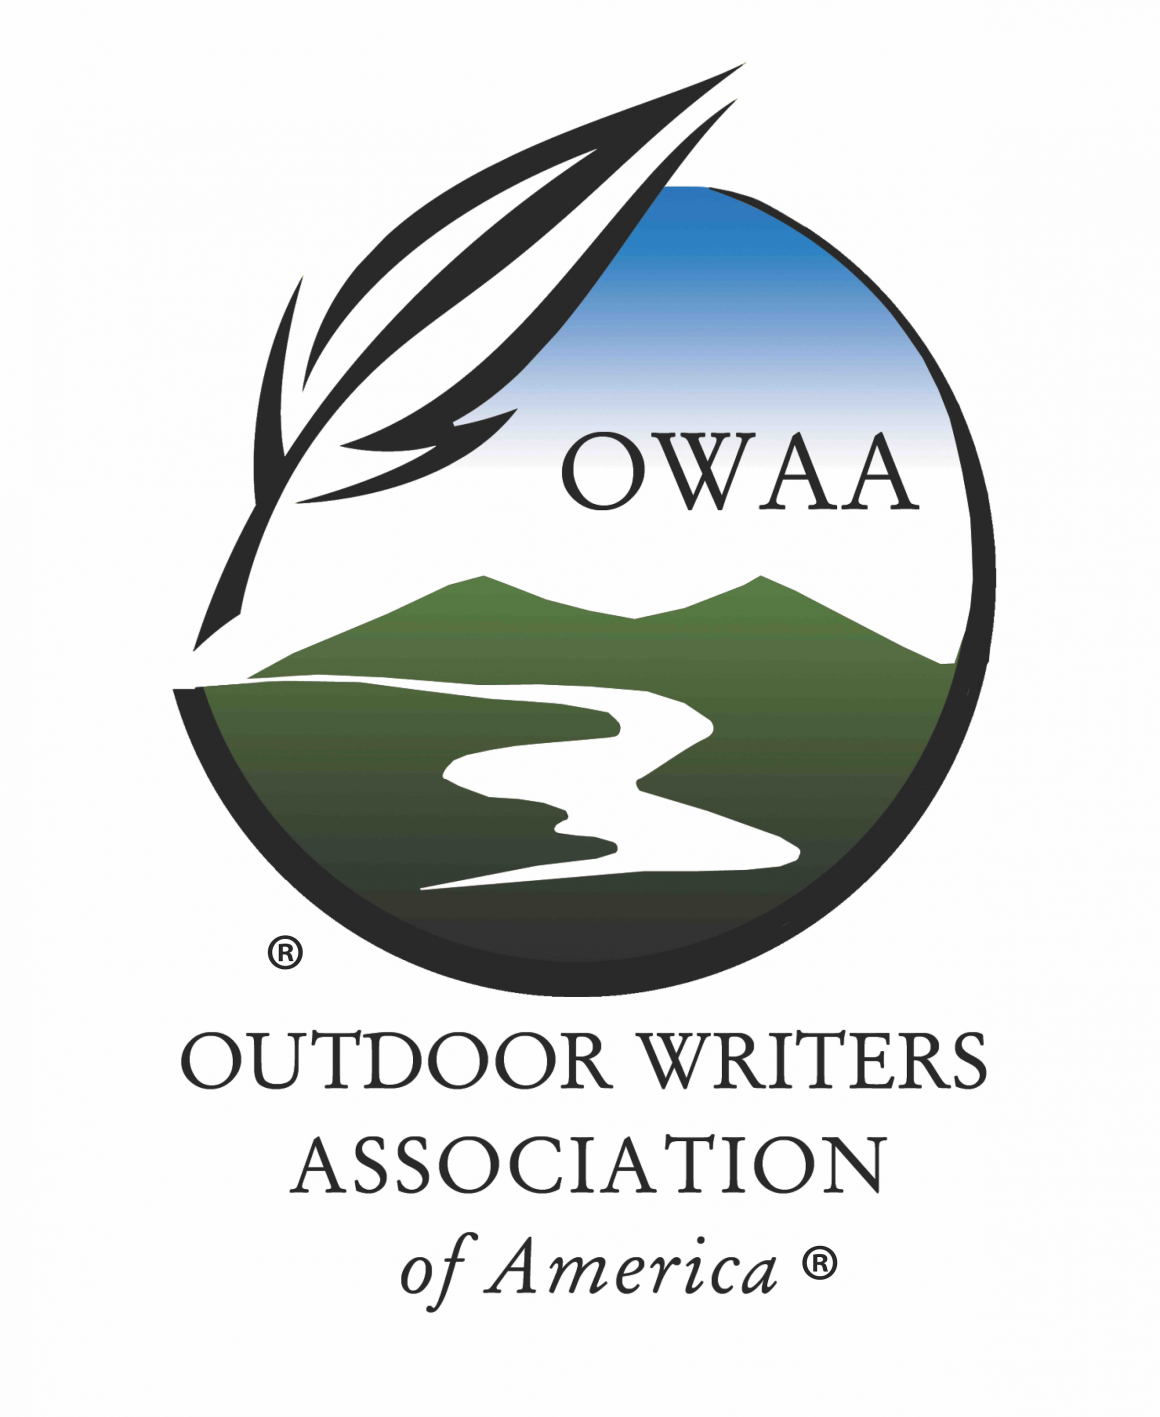 OWAA Reschedules In-Person Conference to Oct. 3-6